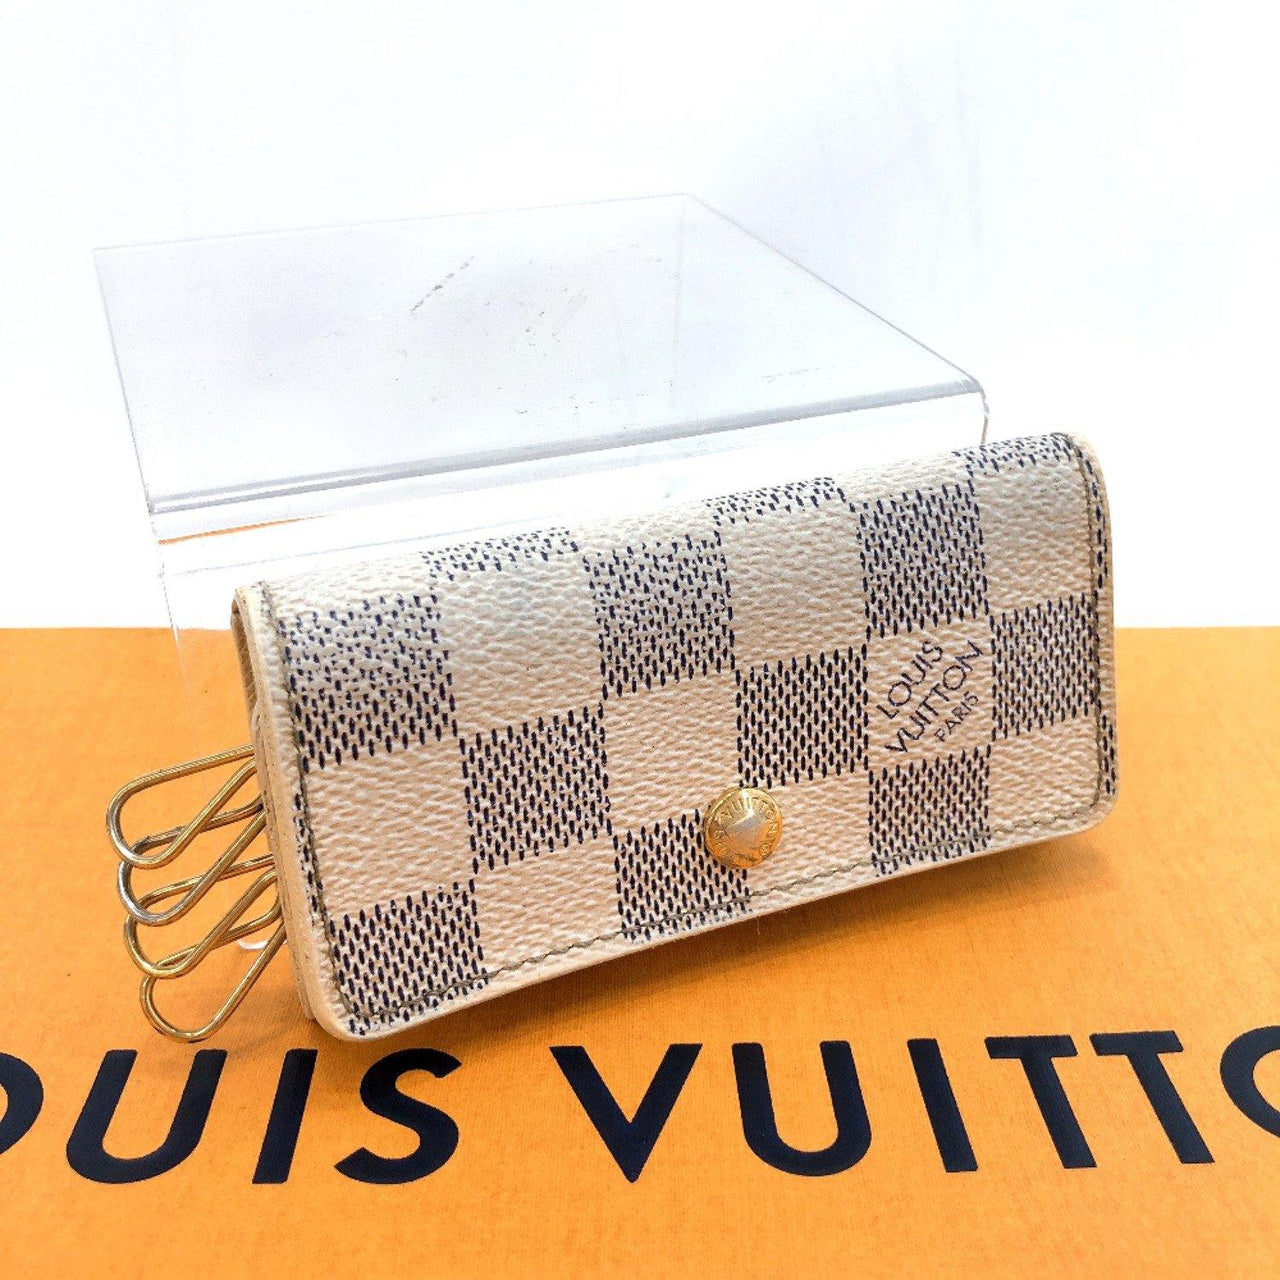 LOUIS VUITTON key holder N60020 Multicles4 4 hooks Damier Azur Canvas white unisex Used